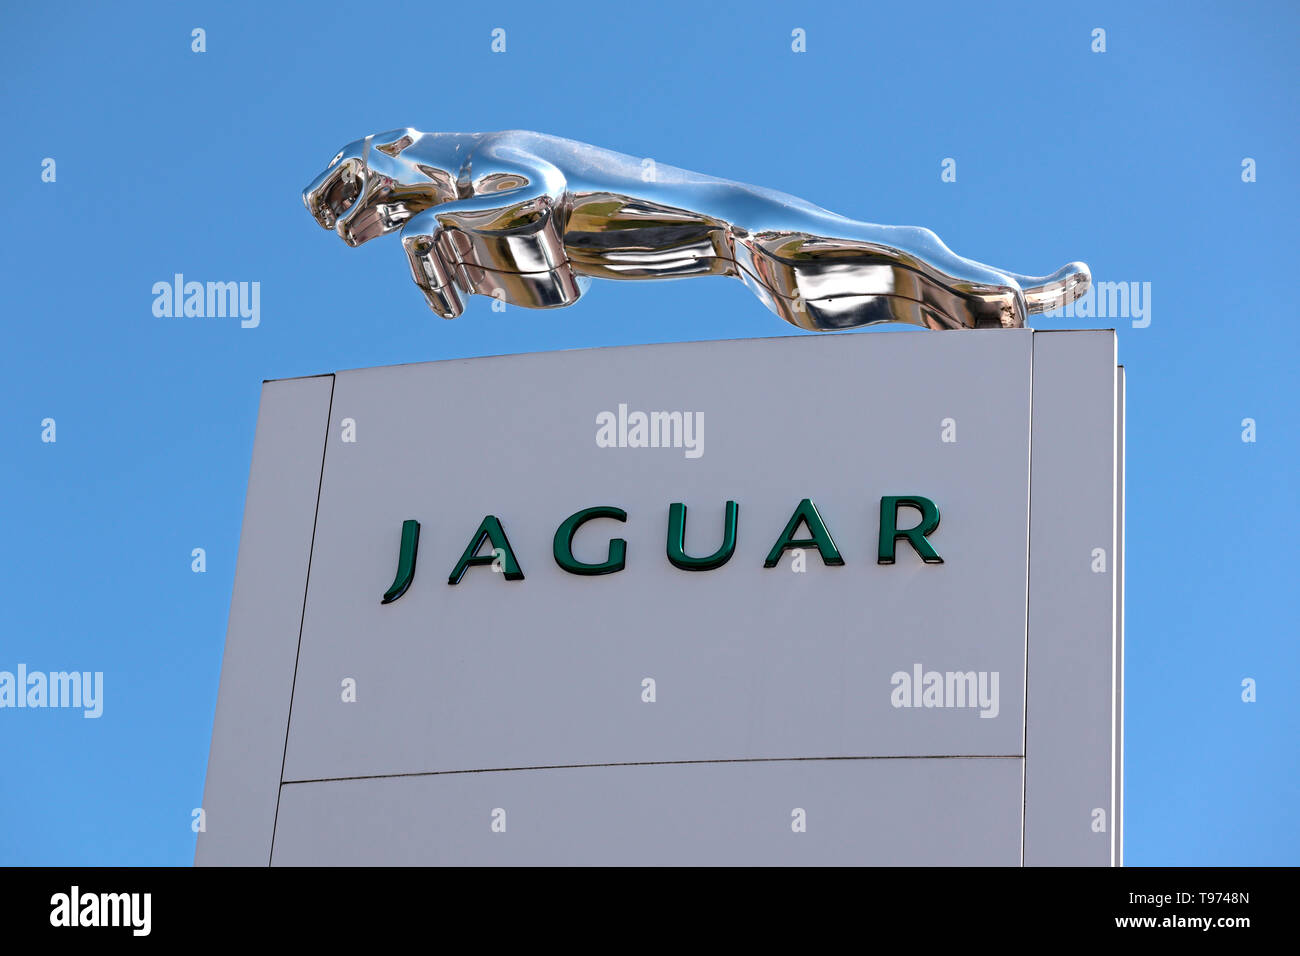 Jaguar Dealership sign with sculpted silver Jaguar Cat emblem - Stock Image